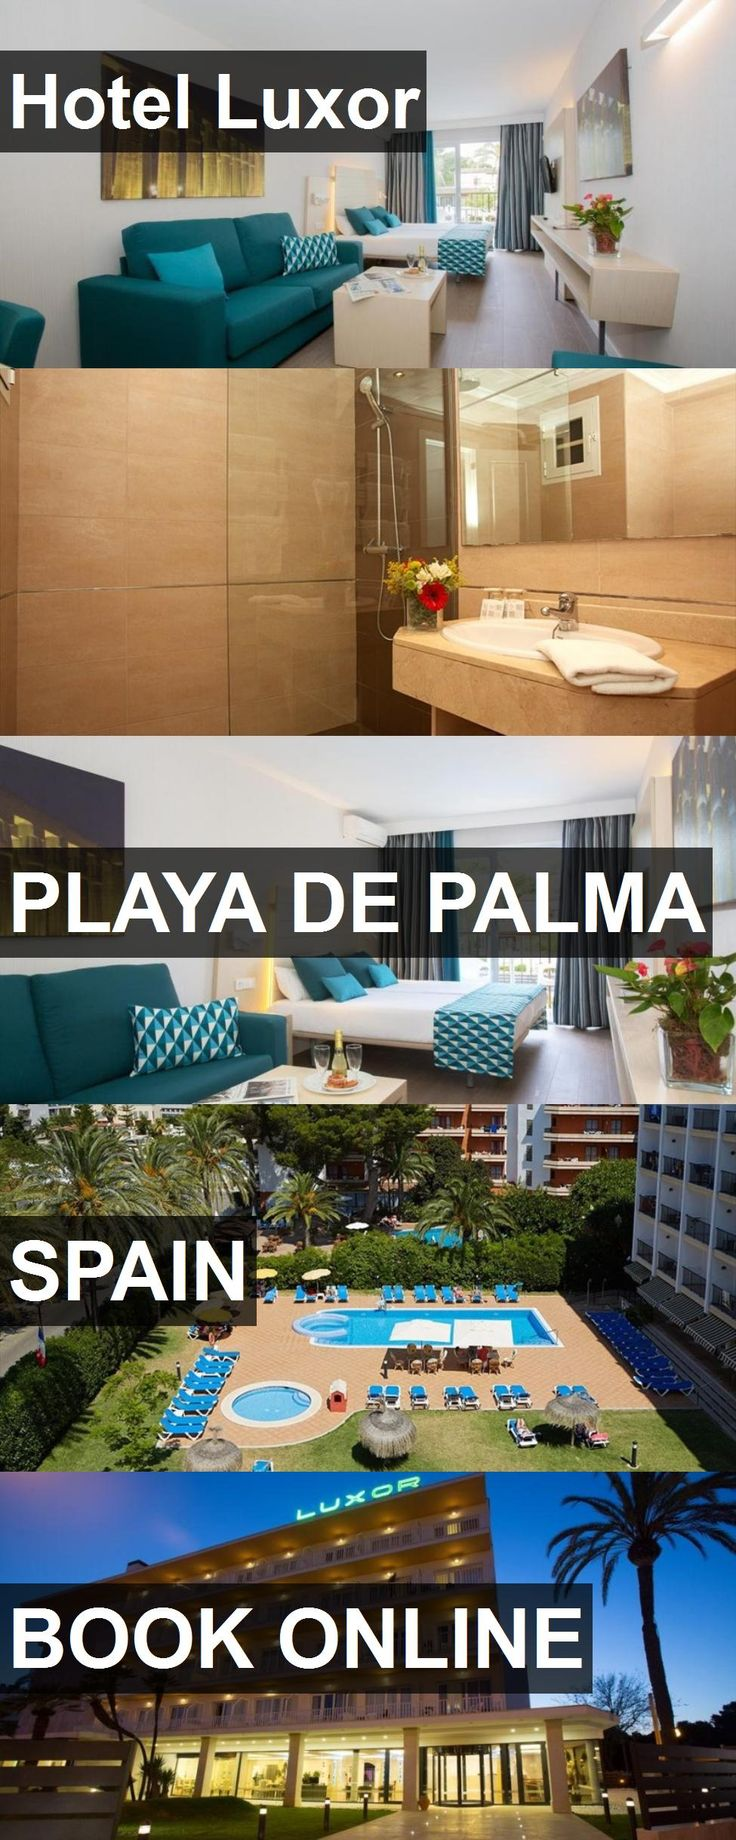 Hotel Luxor in Playa de Palma, Spain. For more information, photos, reviews and best prices please follow the link. #Spain #PlayadePalma #travel #vacation #hotel